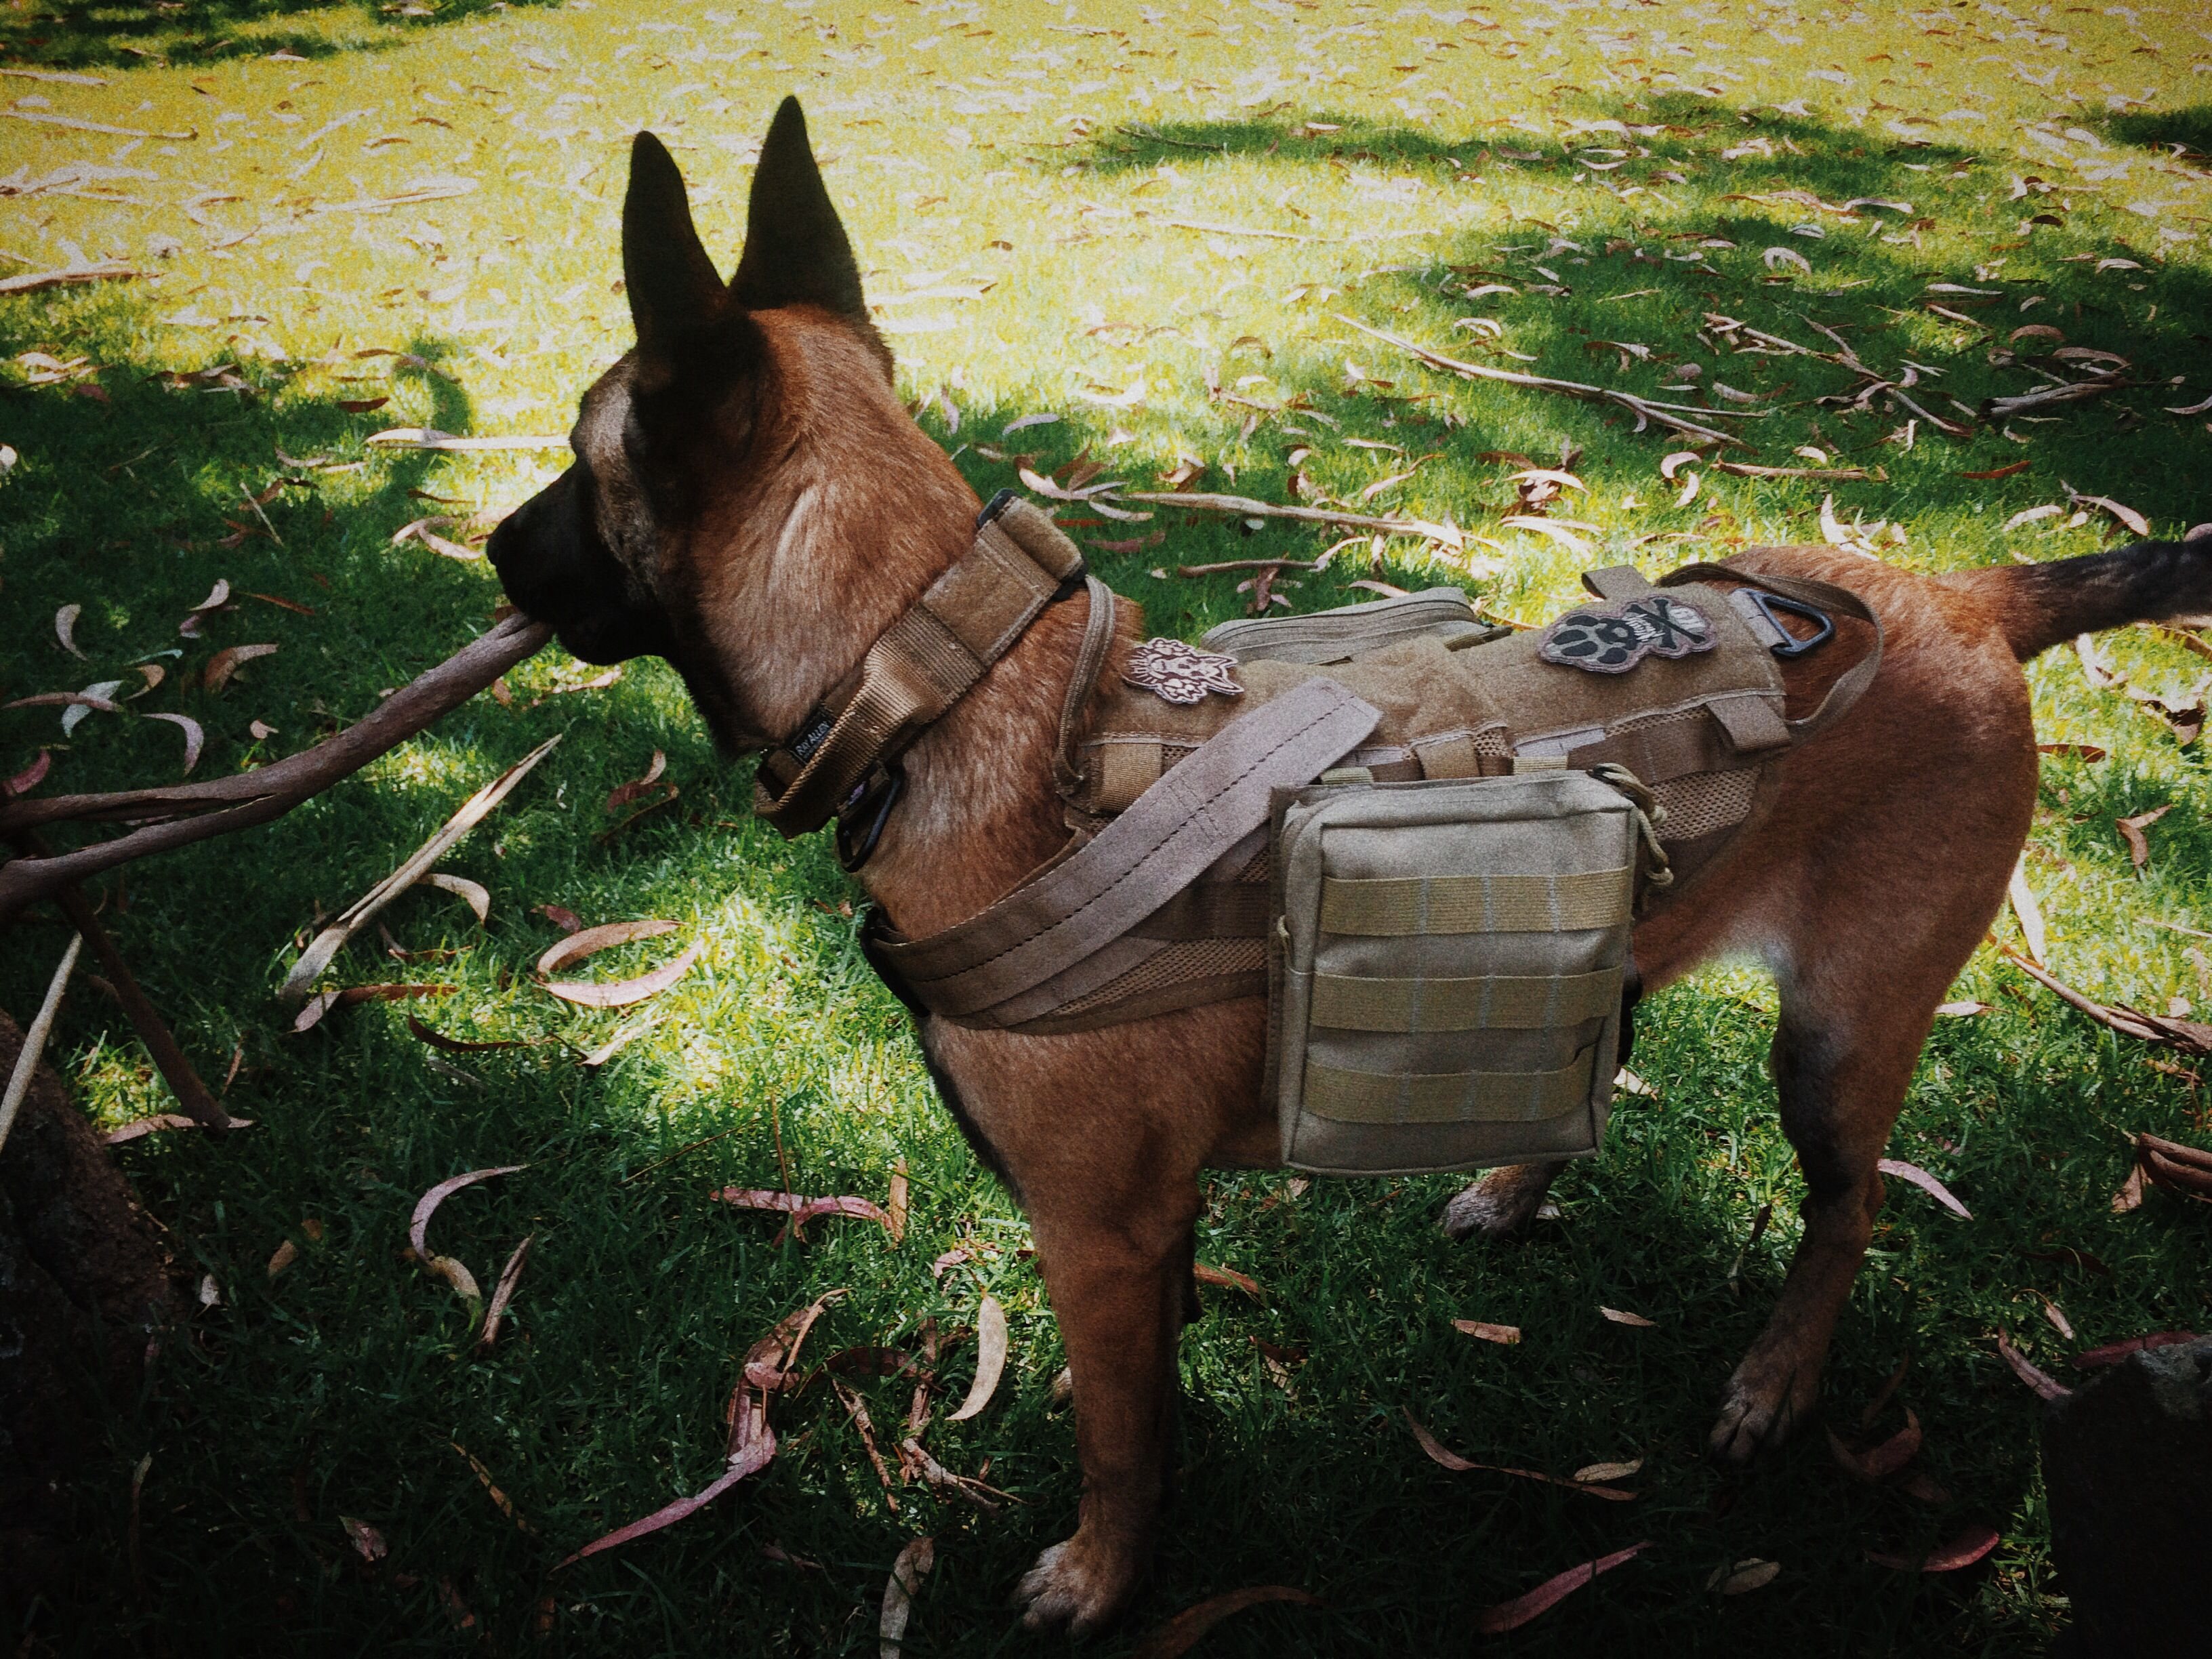 My Own K9 Nuba With Her Duty Harness This Would Awesome If The